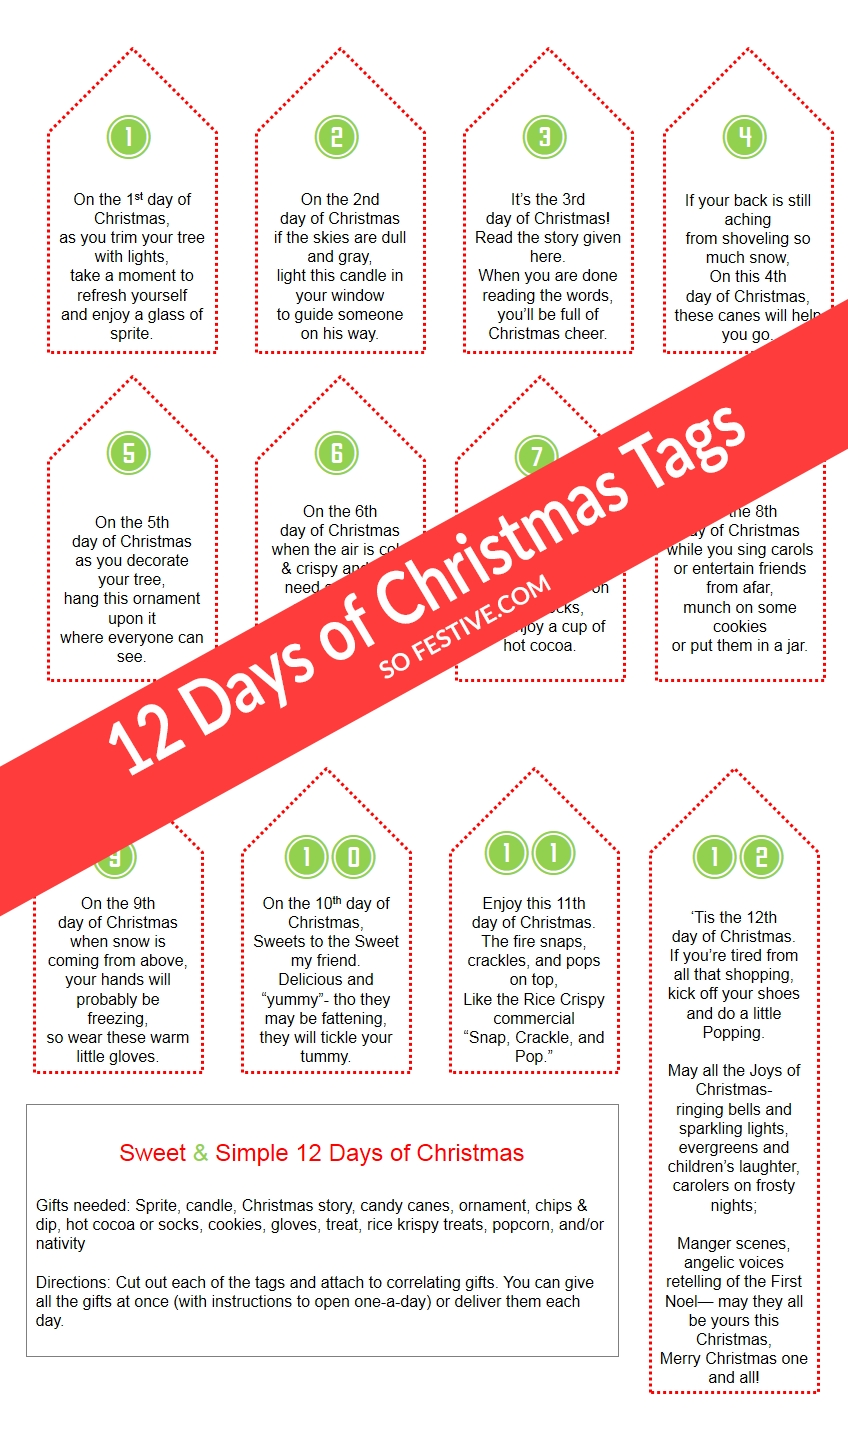 10 Spectacular 12 Days Of Christmas Gifts Ideas sweet simple 12 days of christmas printables so festive 1